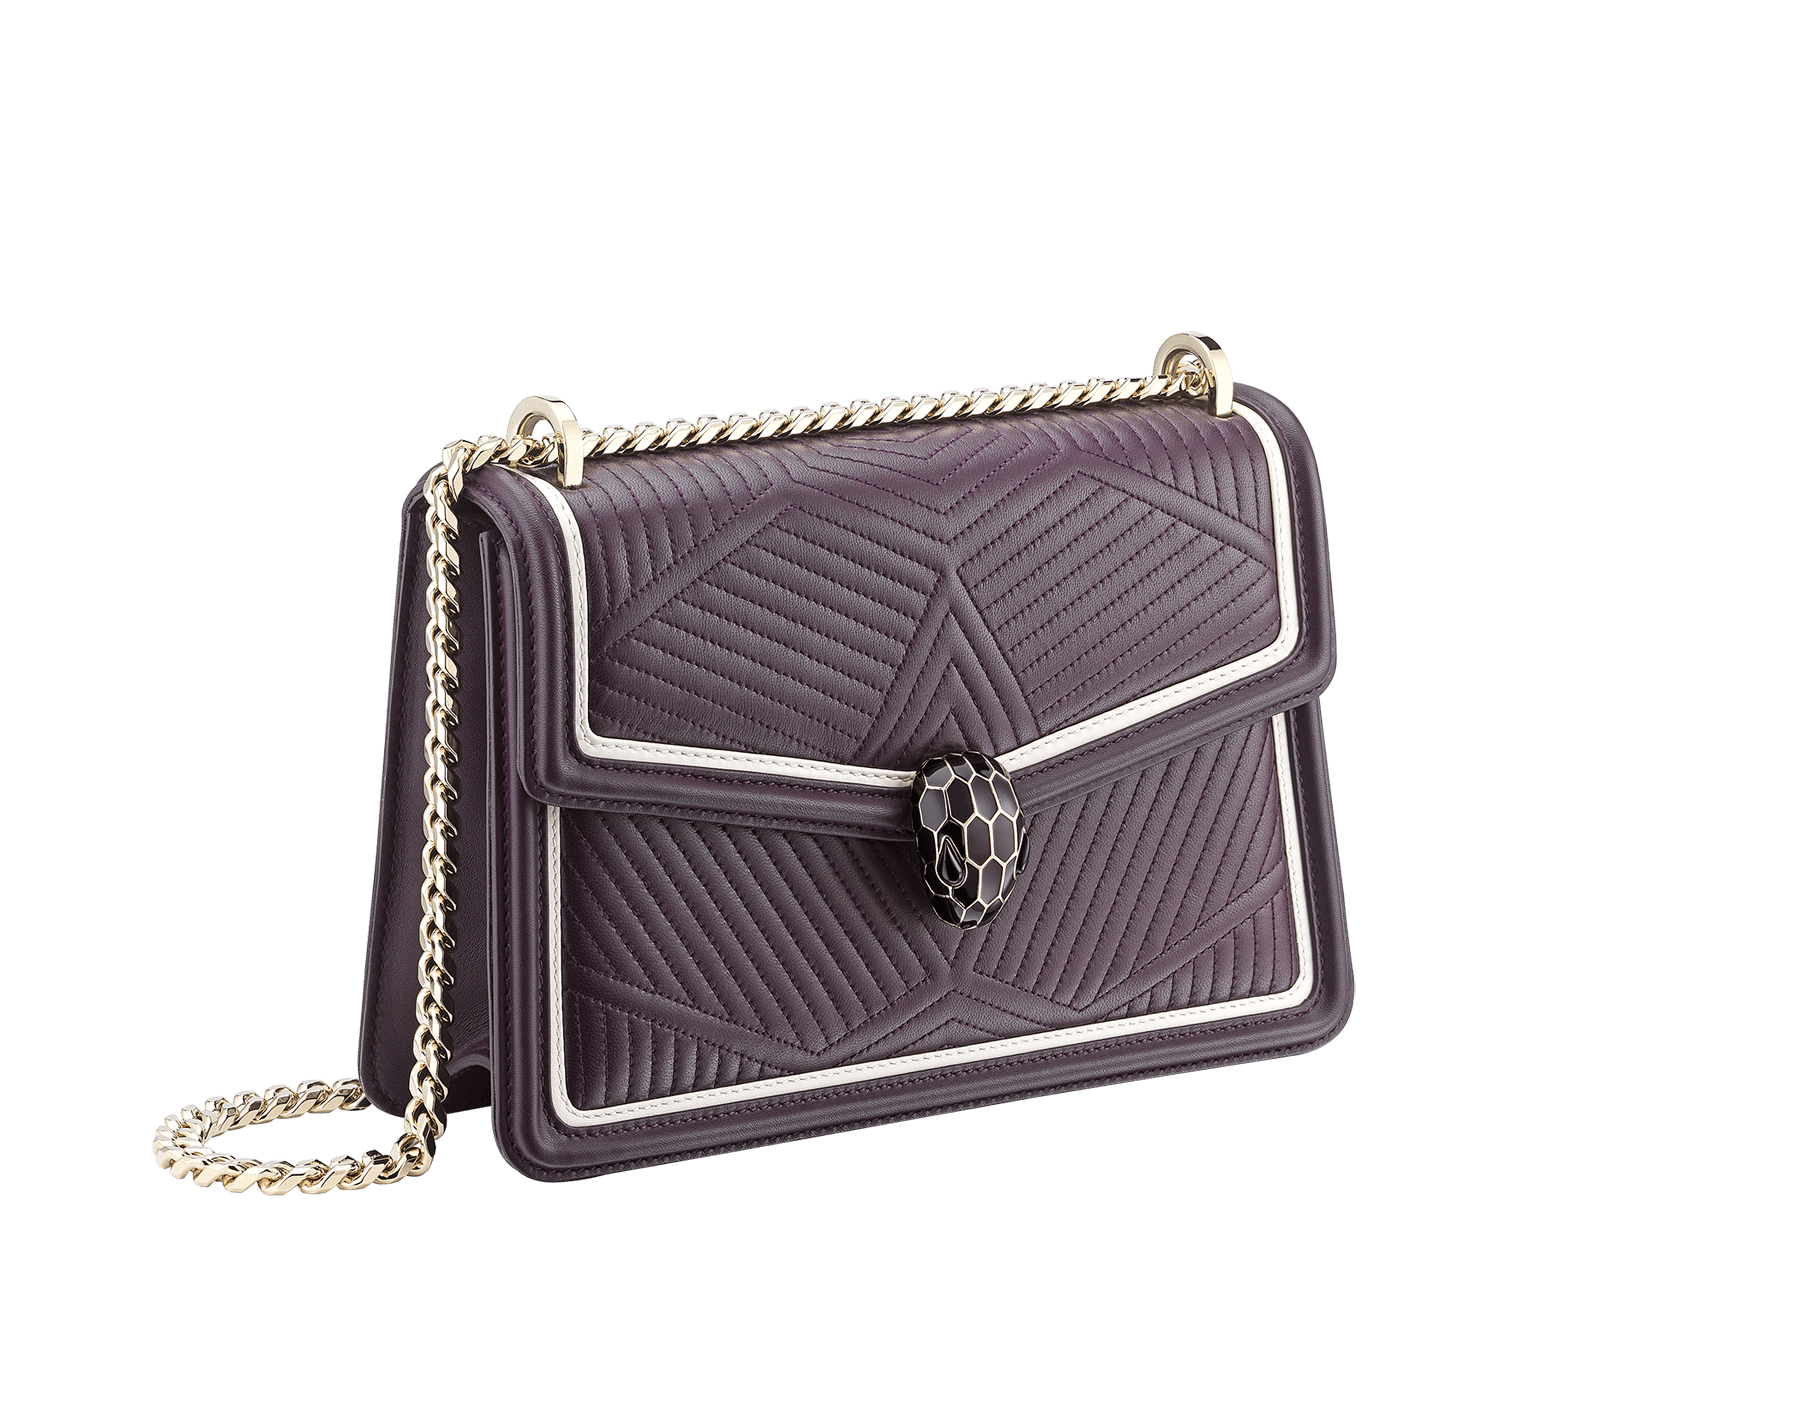 """Serpenti Diamond Blast"" shoulder bag in plum amethyst quilted nappa leather body and tone-on-tone and white calf leather frames. Iconic snakehead closure in light gold-plated brass enriched with plum amethyst and black enamel and black onyx eyes. 288635 image 2"